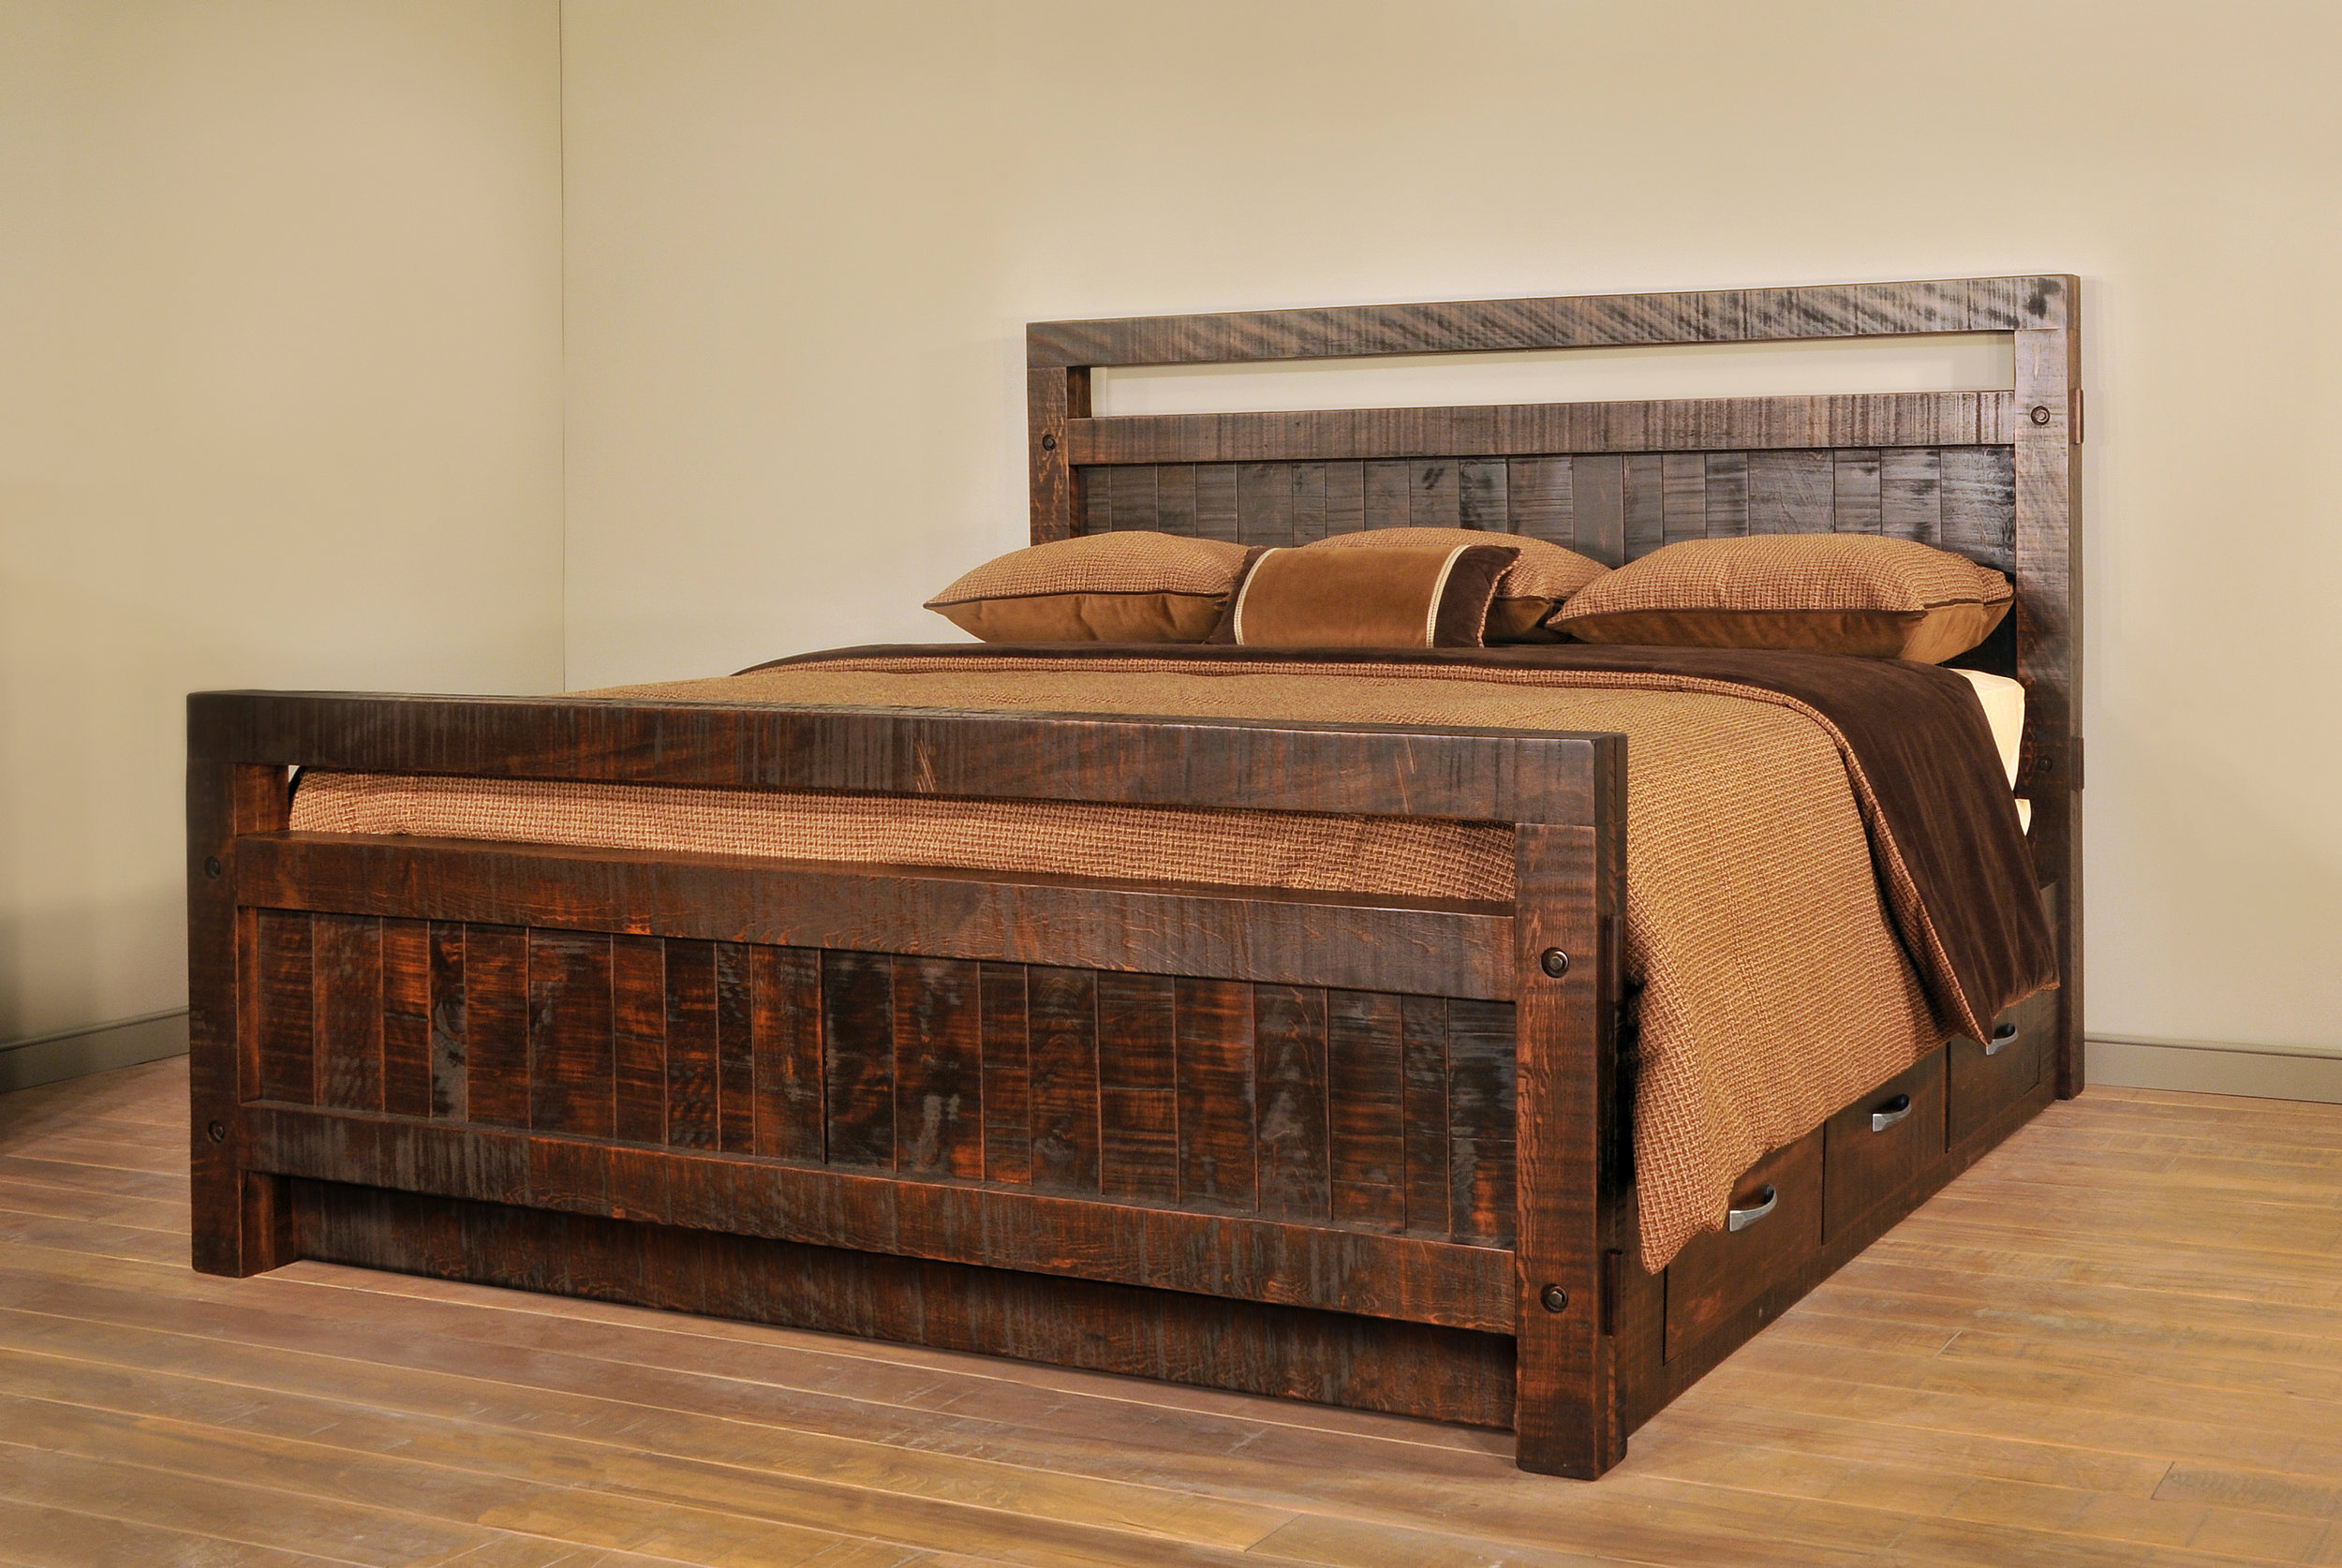 Timber Bed w-drawers S.JPG